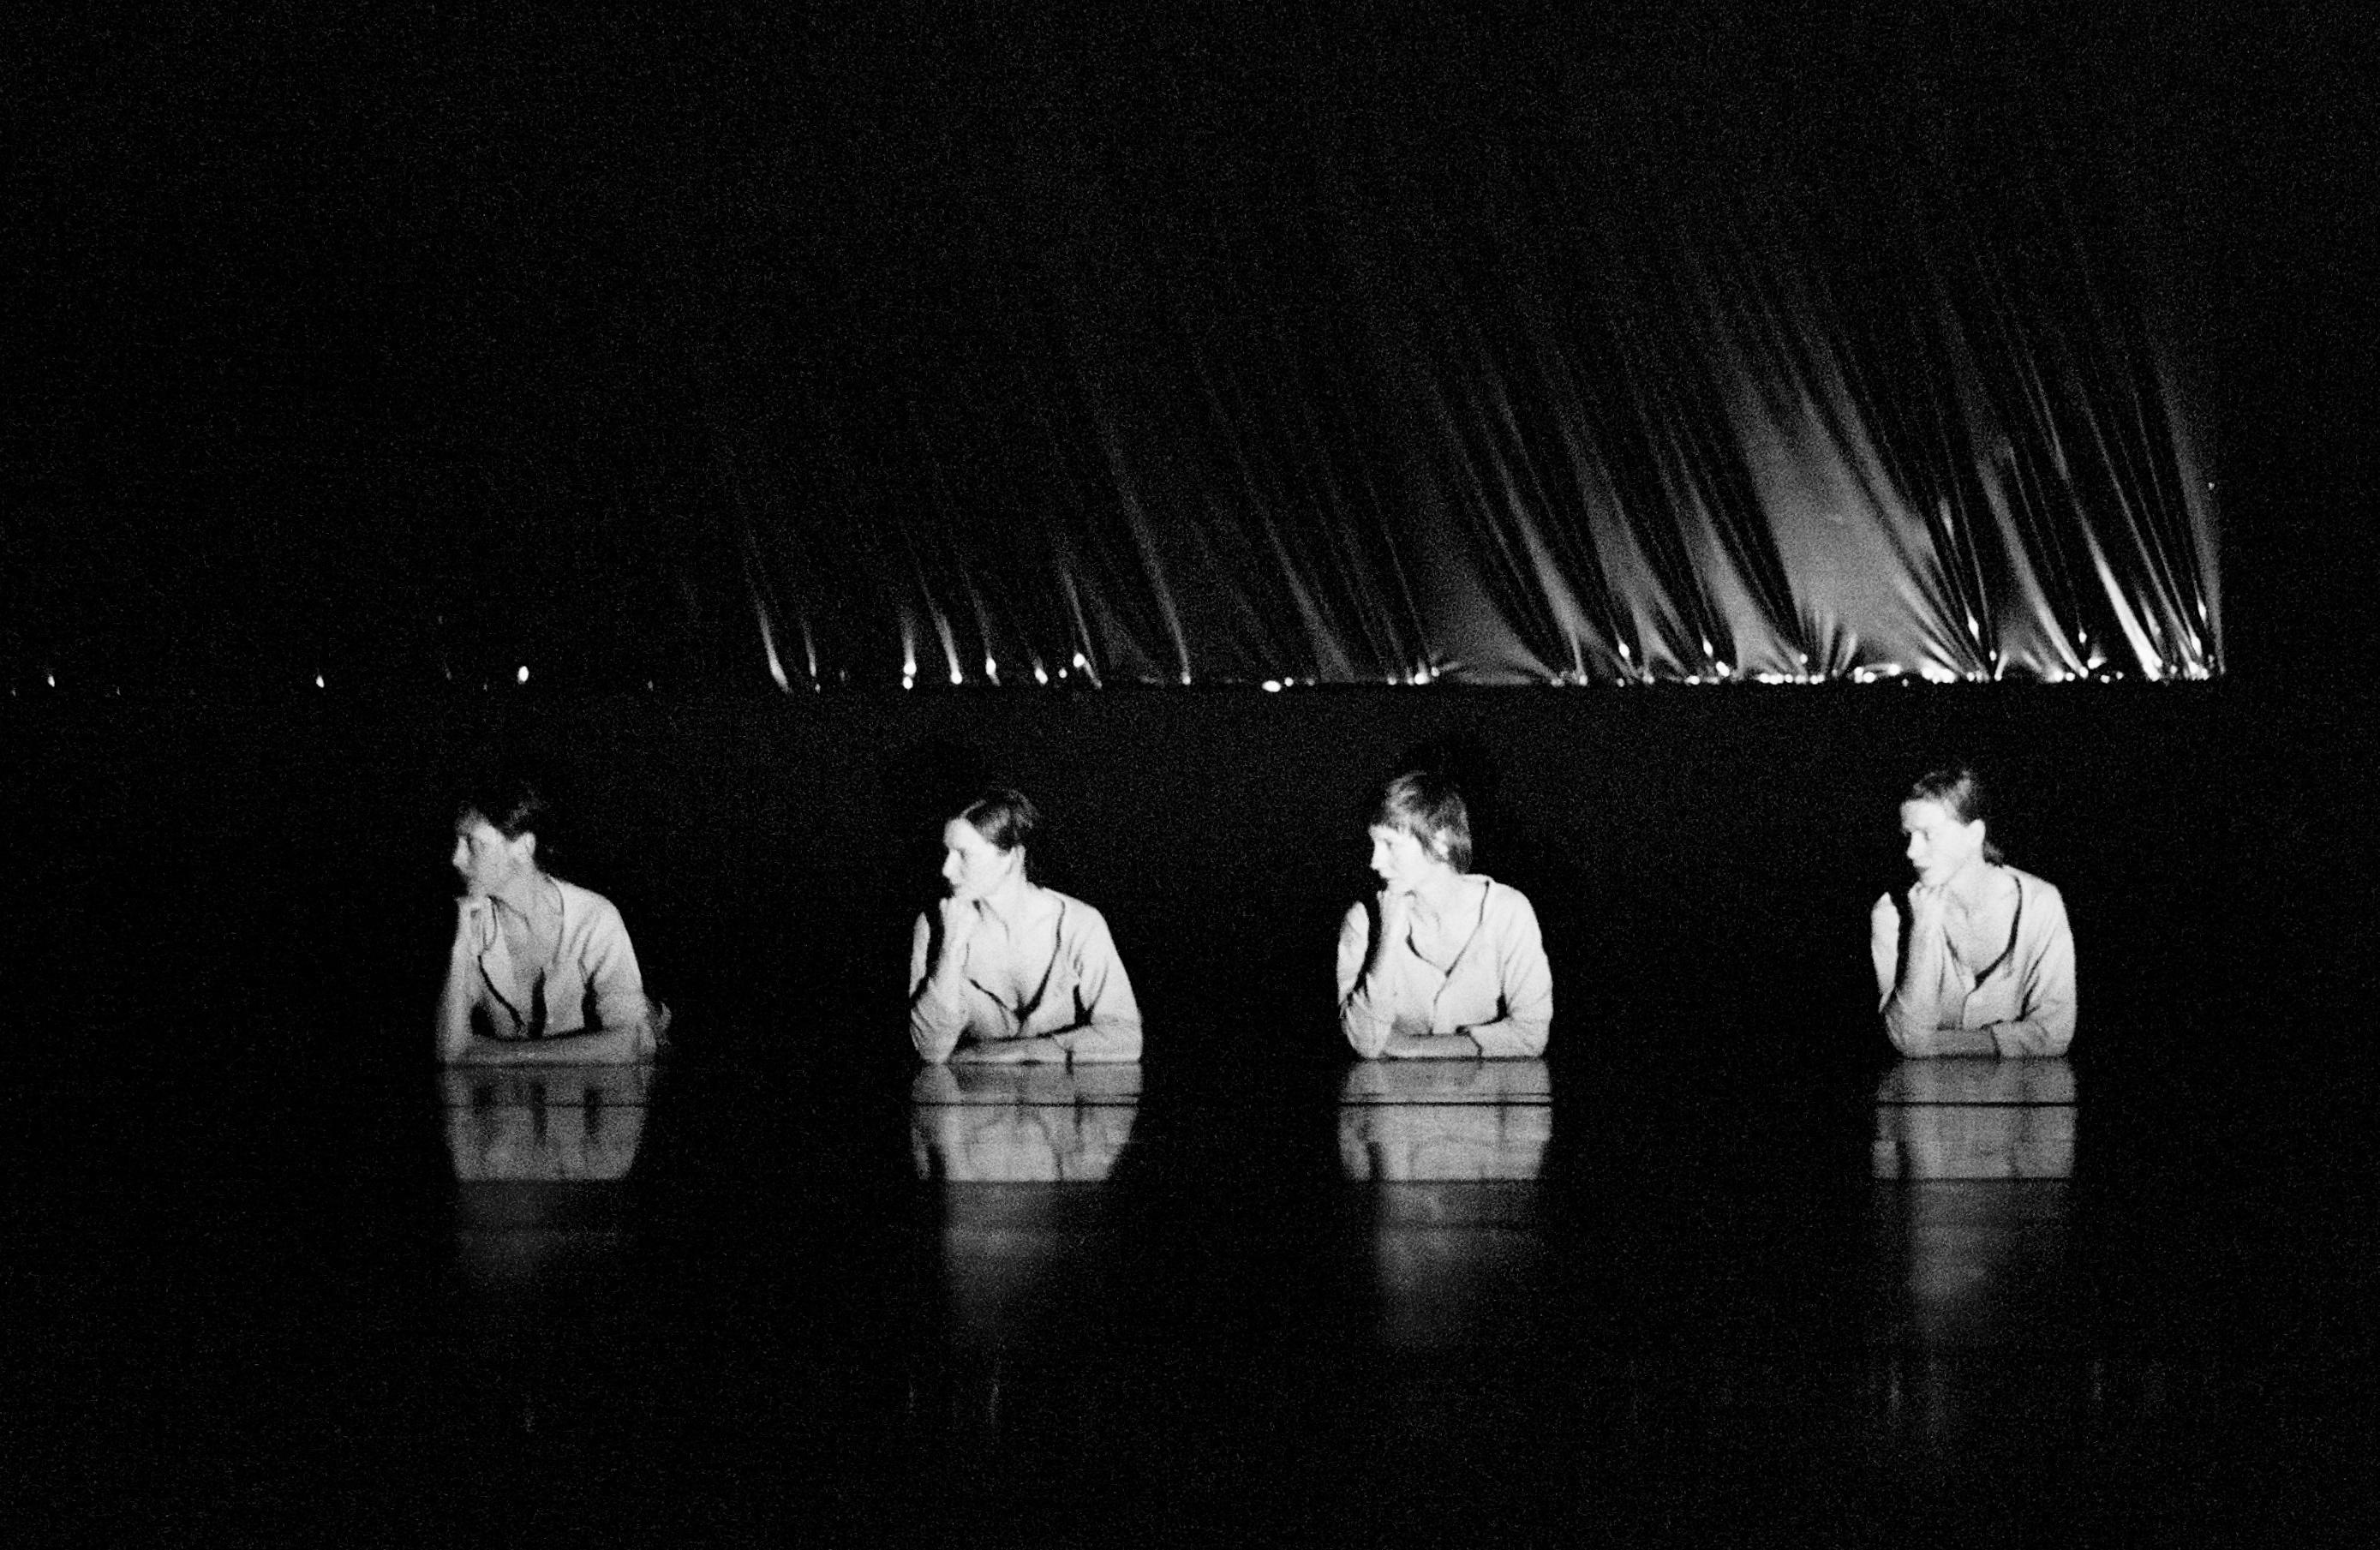 Black-and-white performance still of a dark stage with four dancers visible from the waist up, each resting her chin on a hand